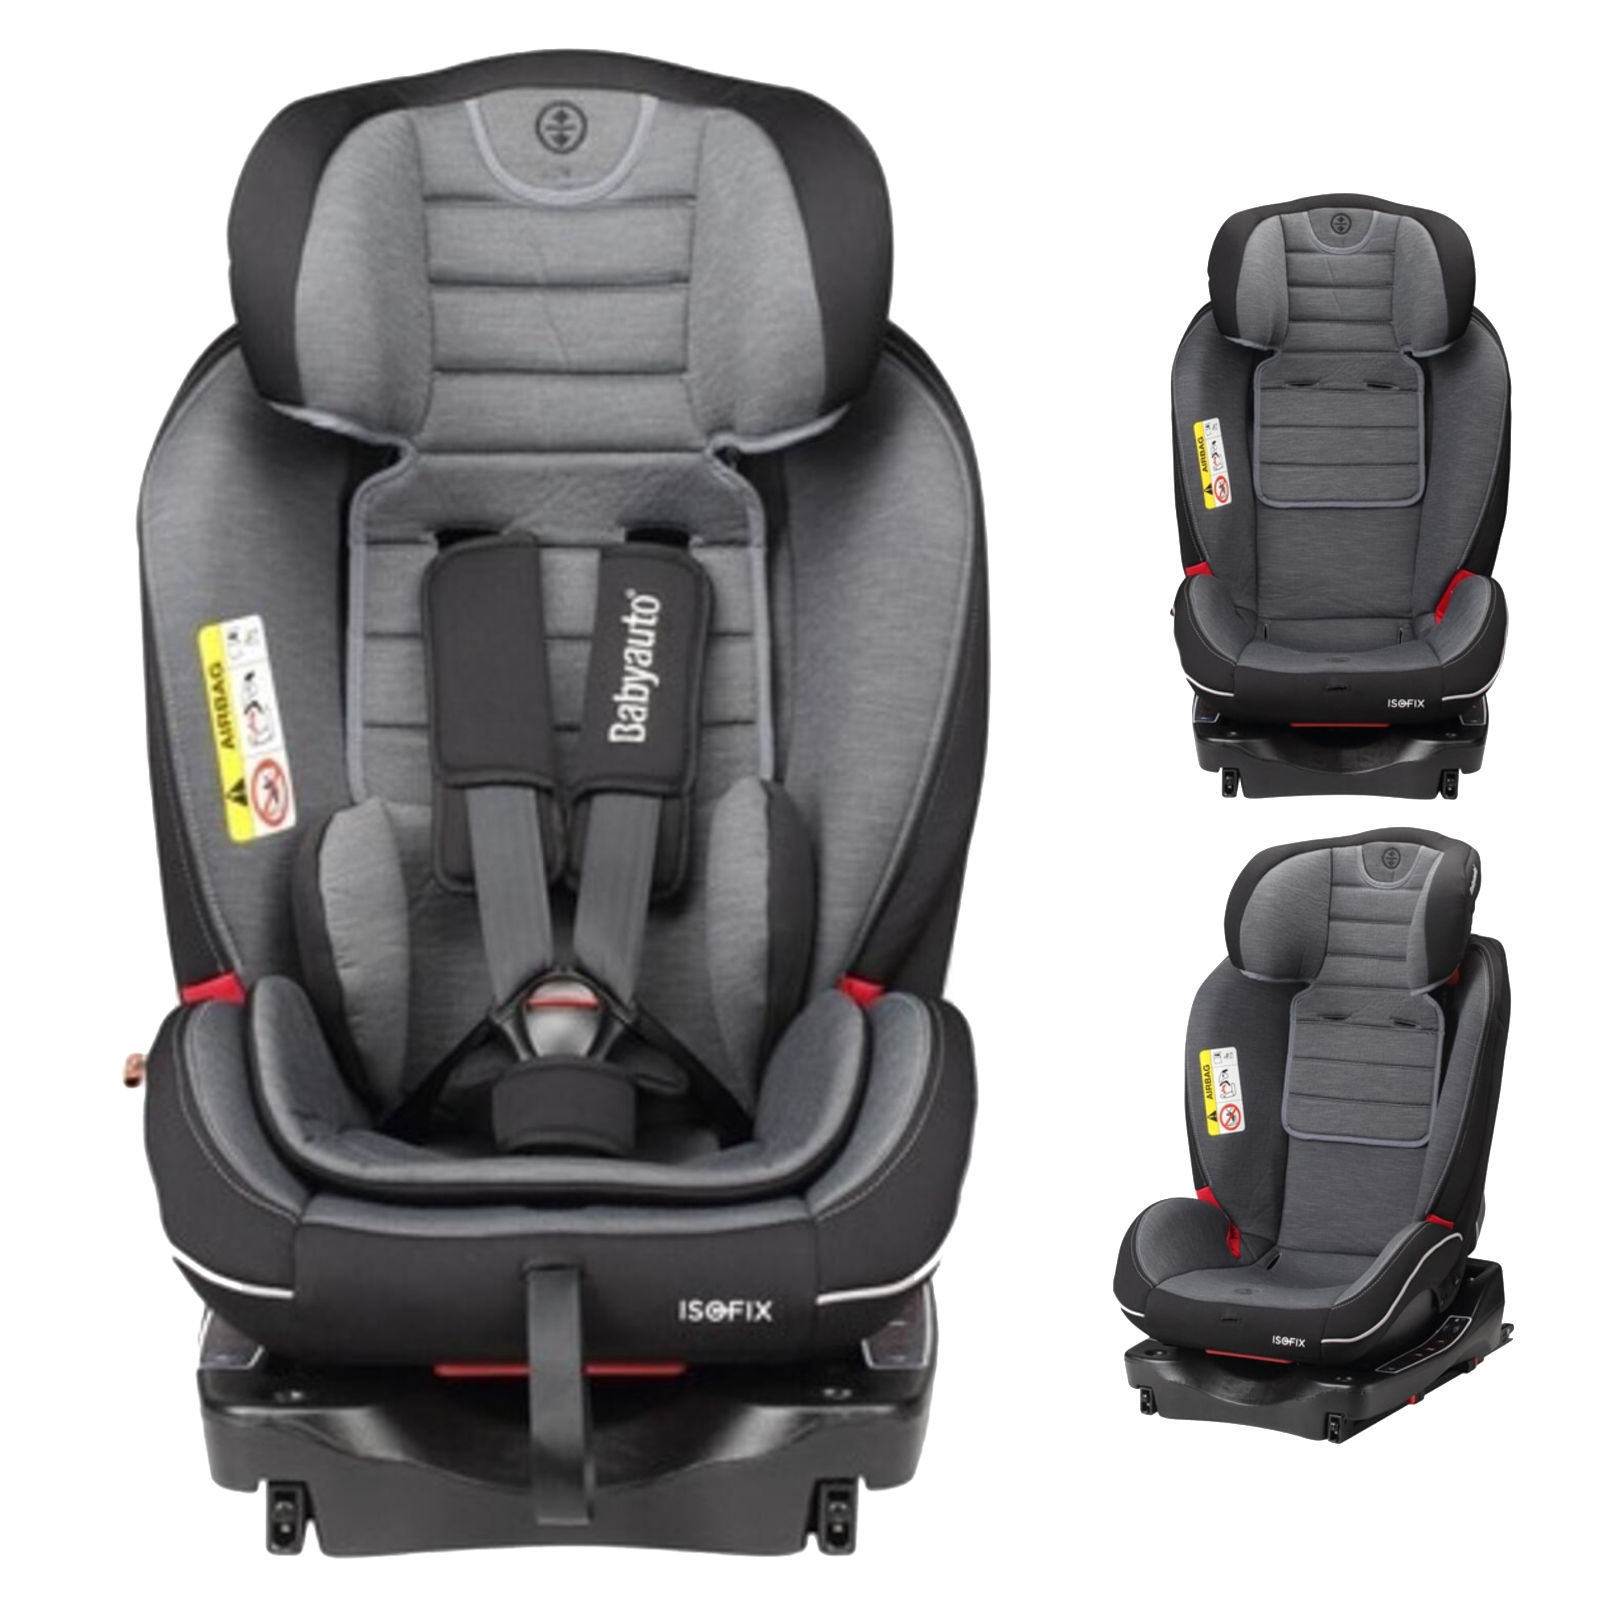 Babyauto Every Stage InfinityFix Group 0+123 ISOFIX Car Seat - Black / Grey